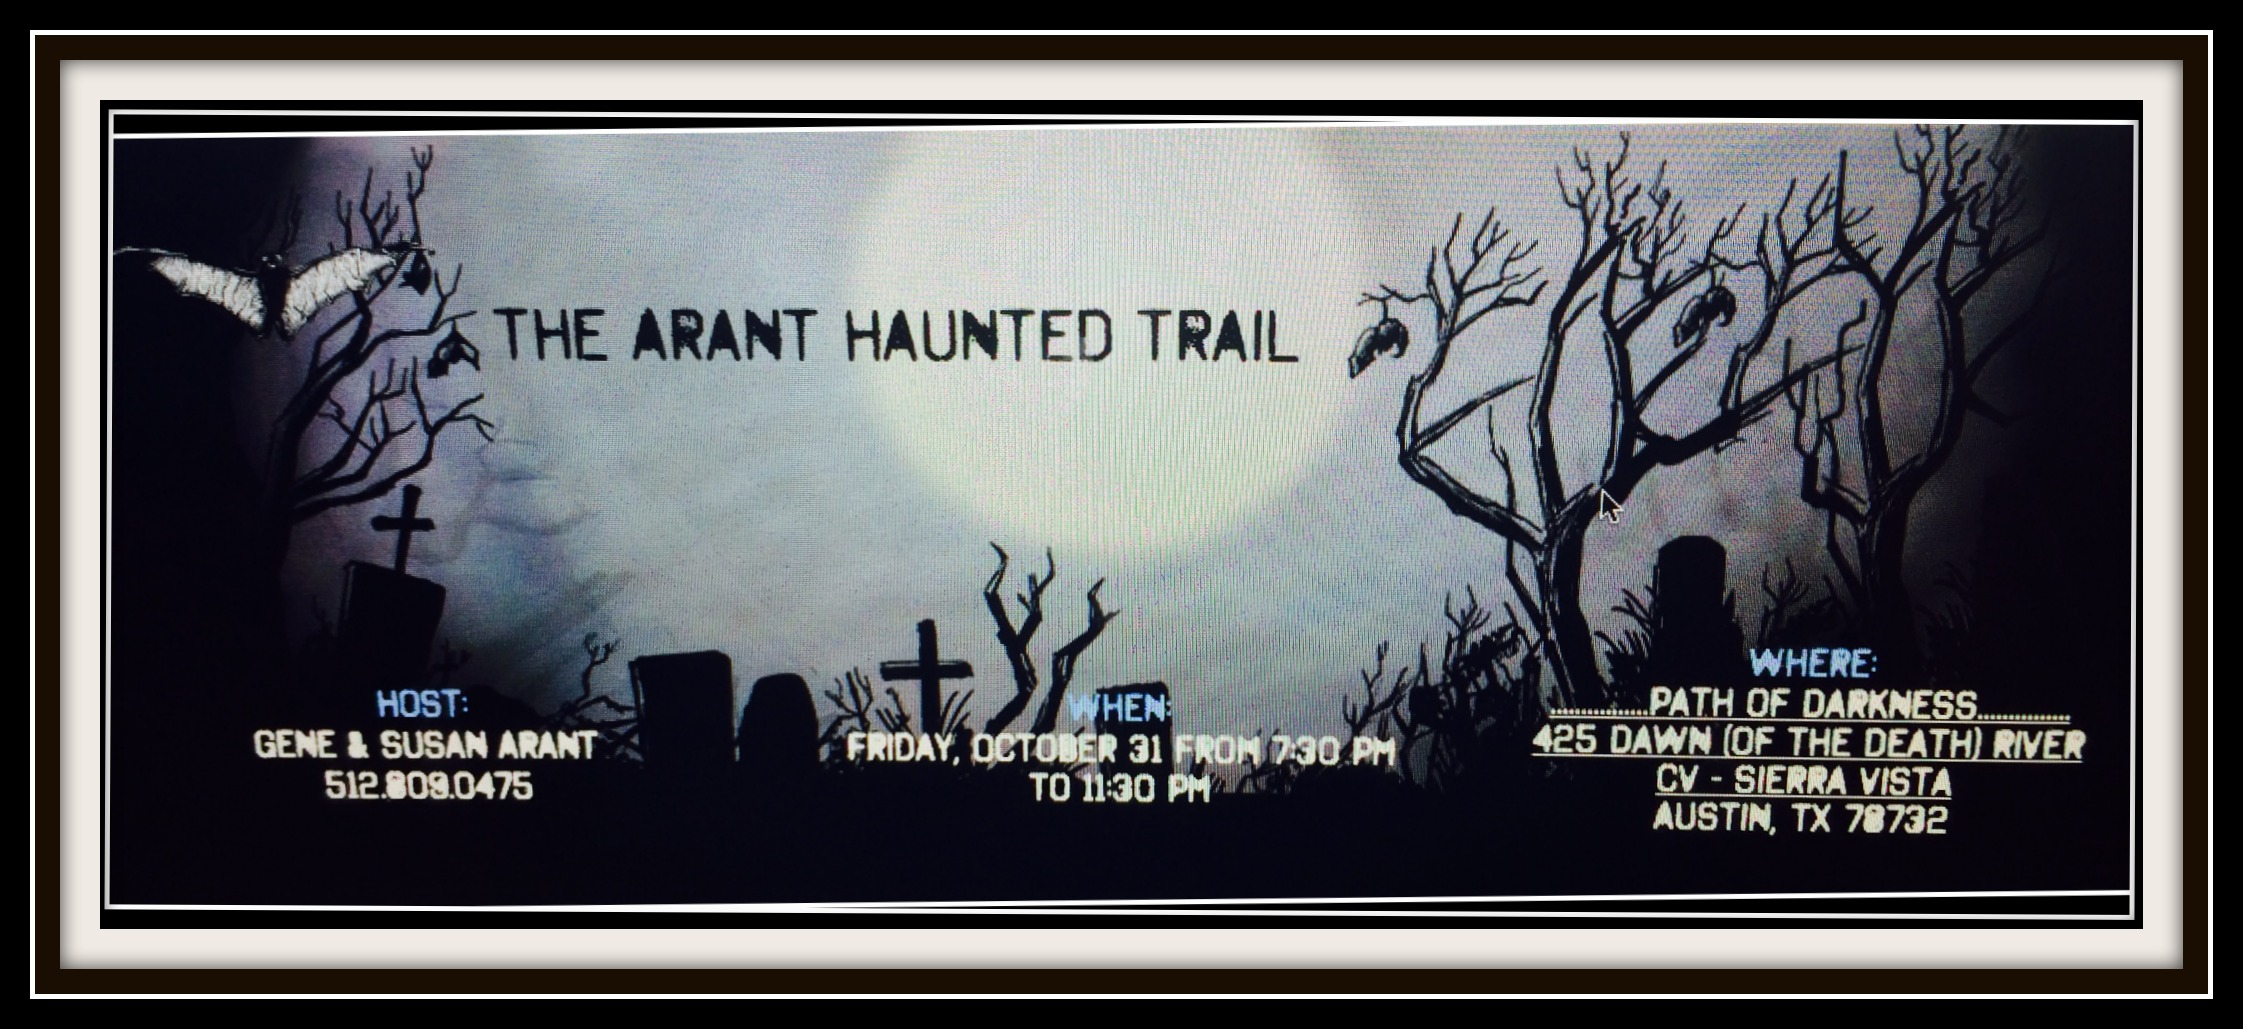 Invitation to Arant Haunted Trail in Steiner